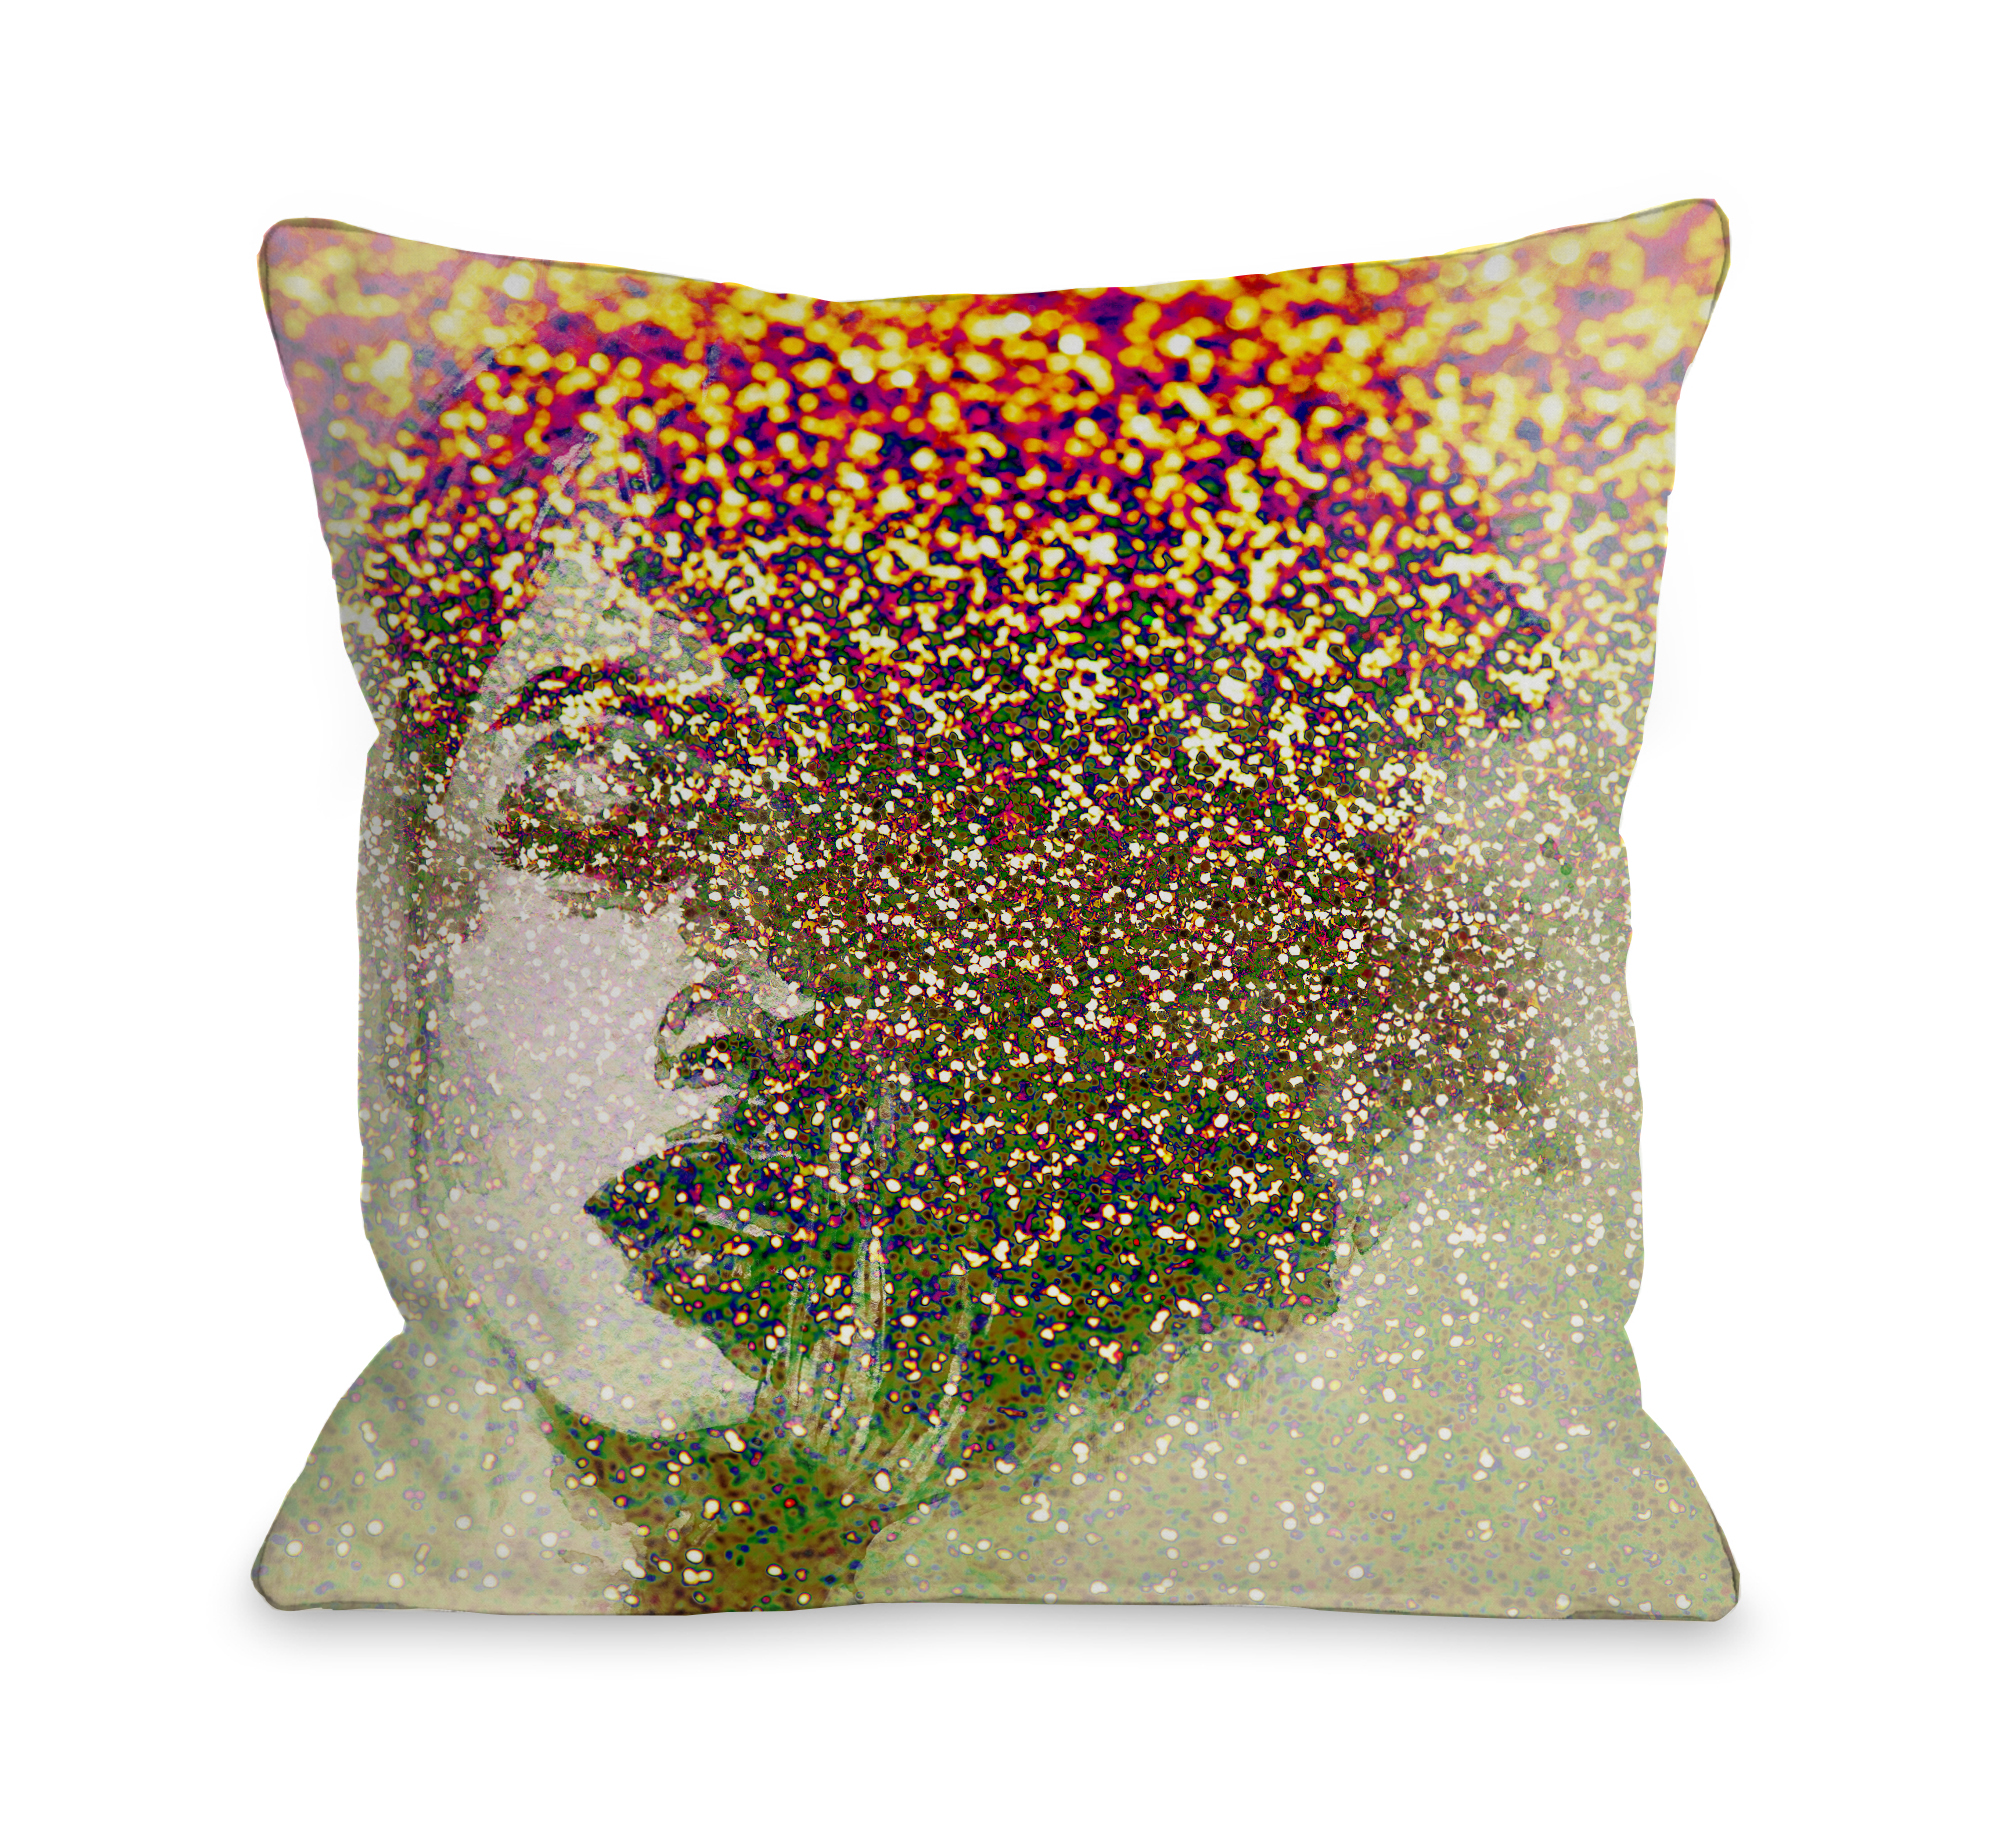 Closed Eyes - Tan Multi 16x16 Pillow by OBC